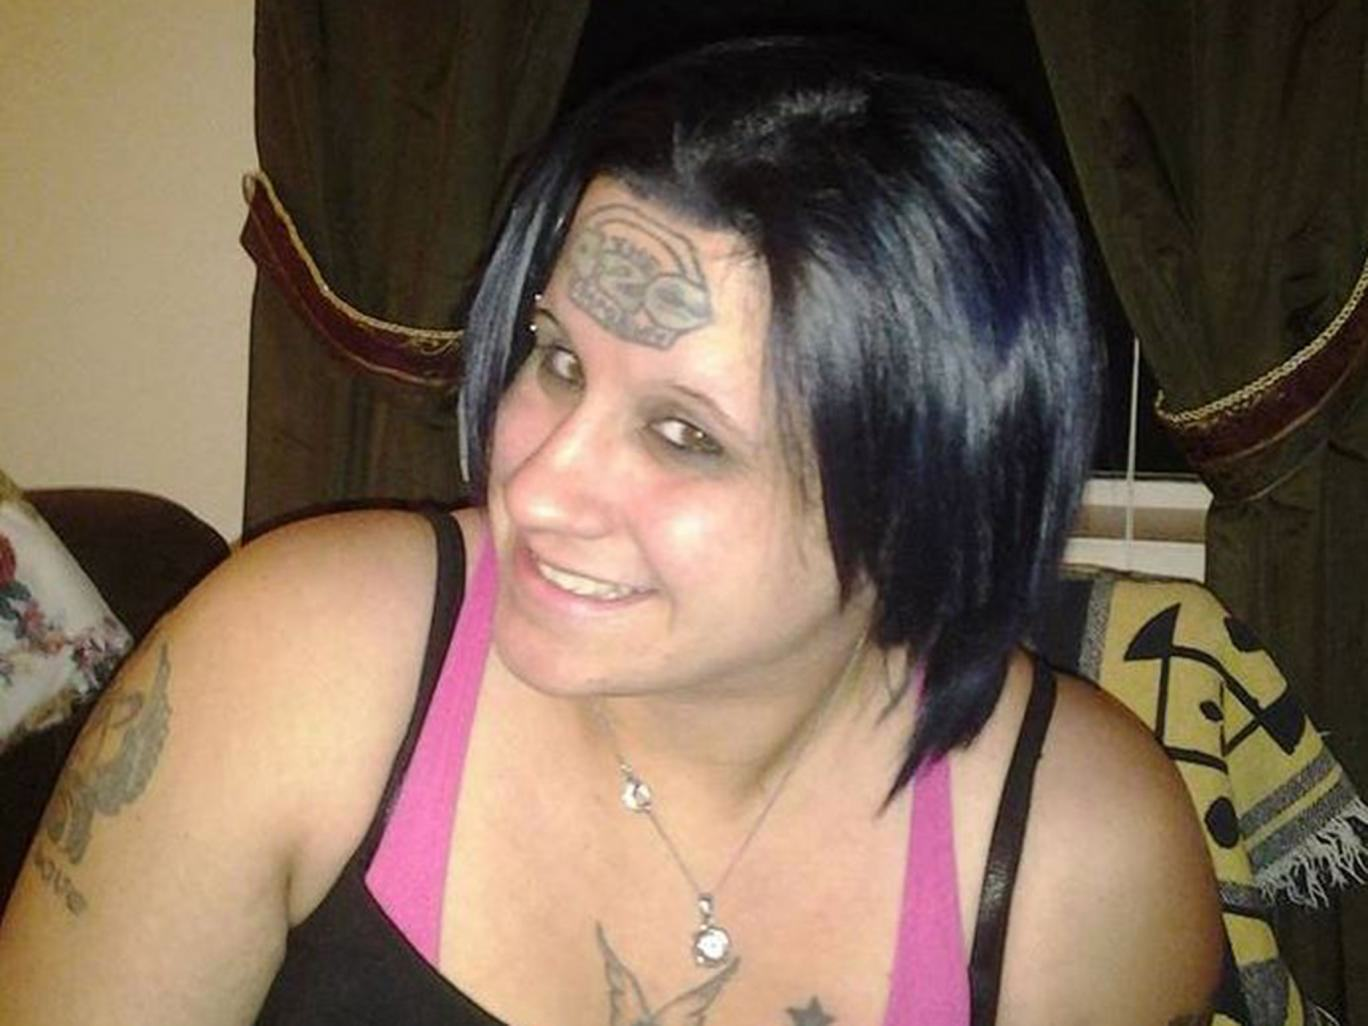 tabitha west crowdfunding tatto Woman Gets Ridiculous Forehead Tattoo, Uses Fundraising Site To Get It Removed